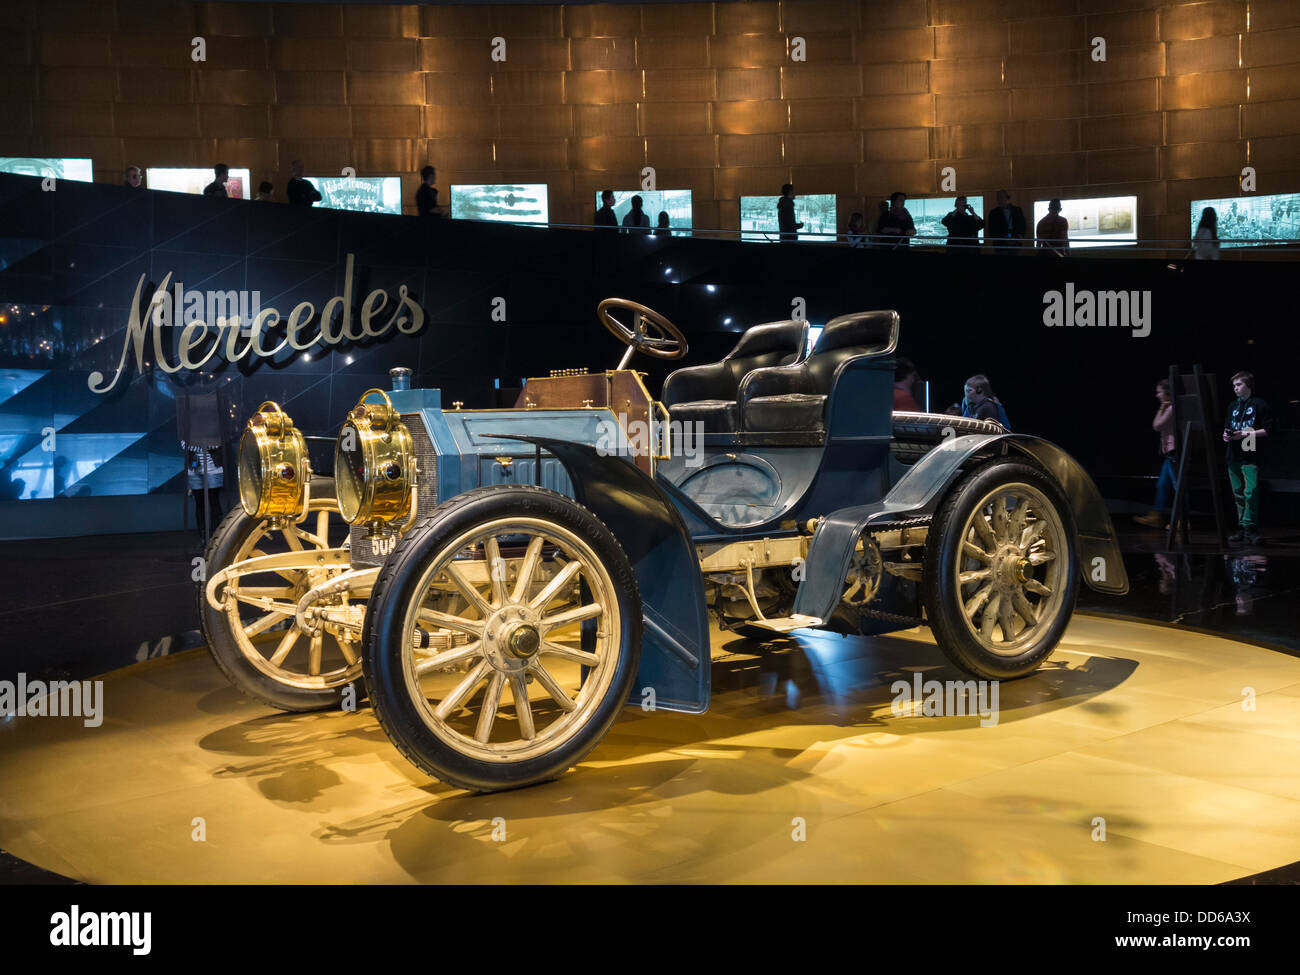 an early mercedes car on display at the mercedes benz museum stock photo royalty free image. Black Bedroom Furniture Sets. Home Design Ideas